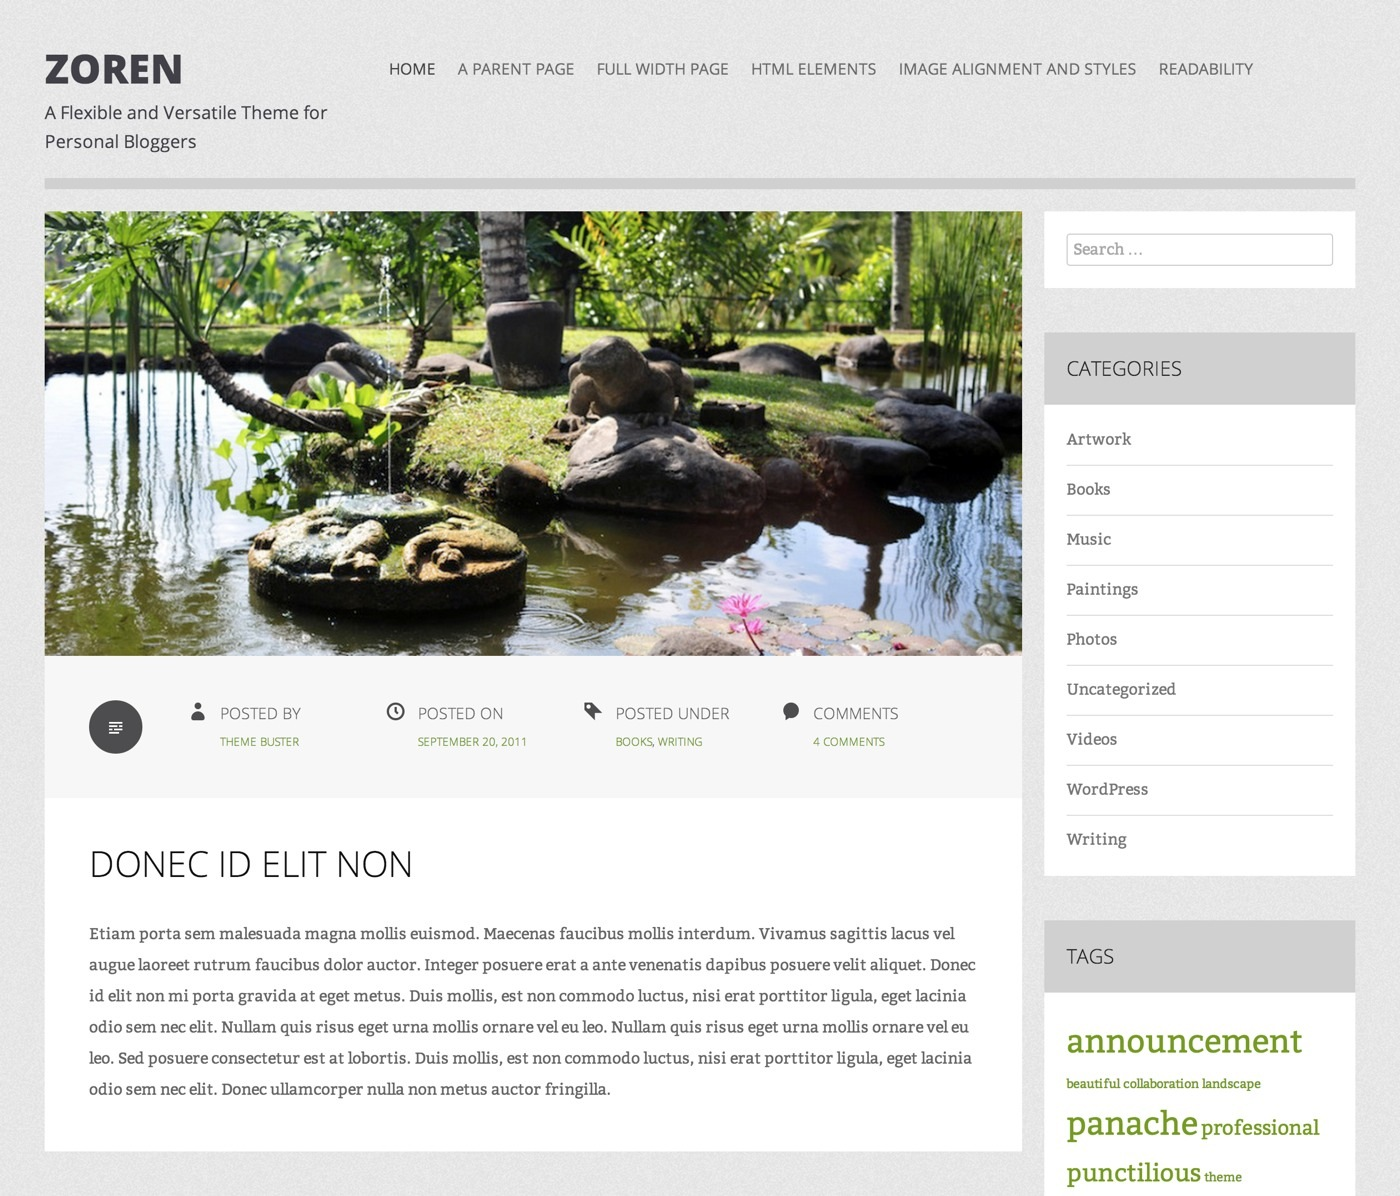 Zoren: Home Page